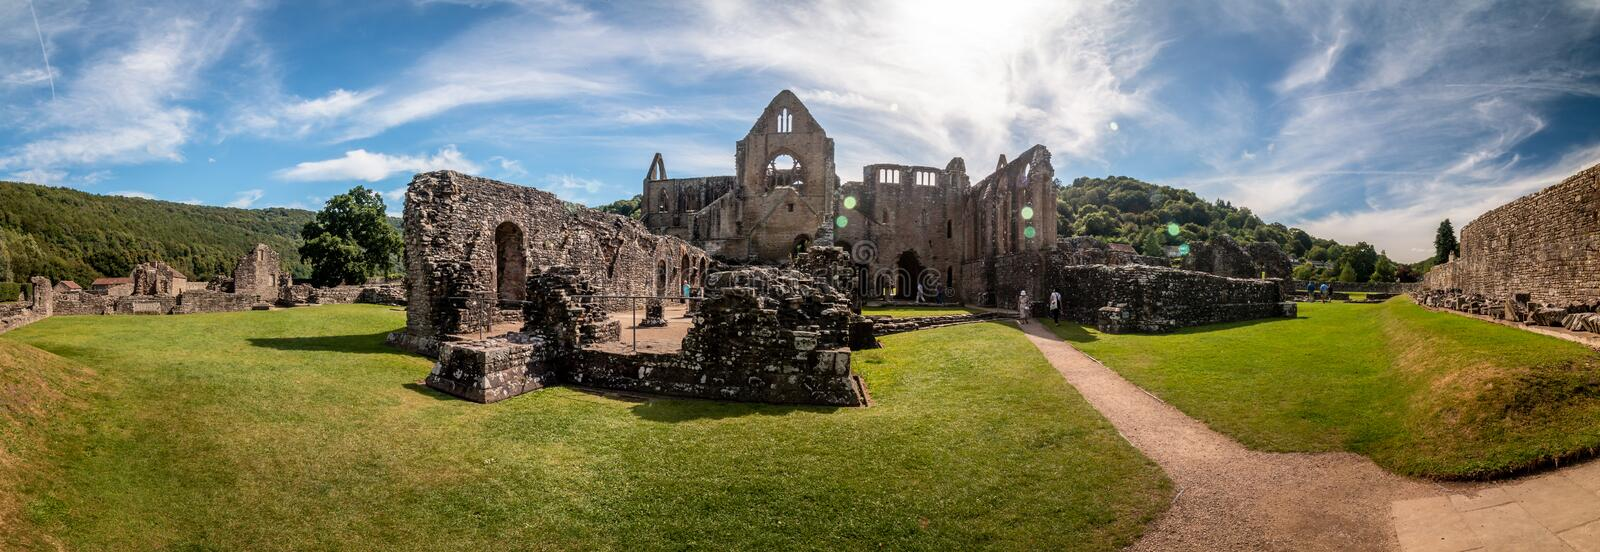 Tintern Abbey, Wales wide-angle and photomerge. In uk royalty free stock photography